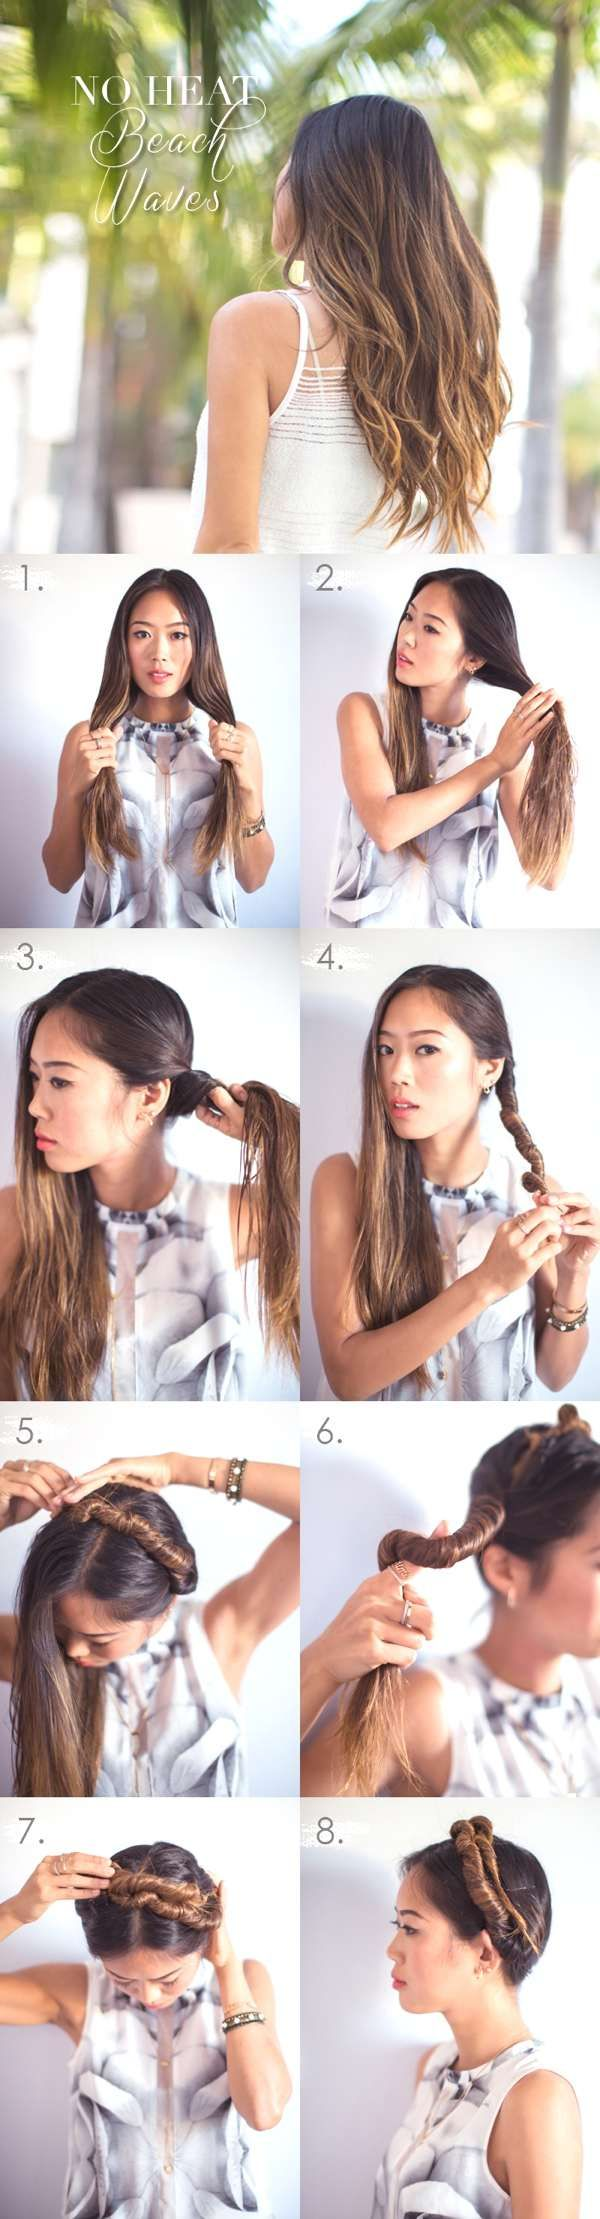 Watch How to Sleep with Long Hair: 5 Easy Ways to Protect It video